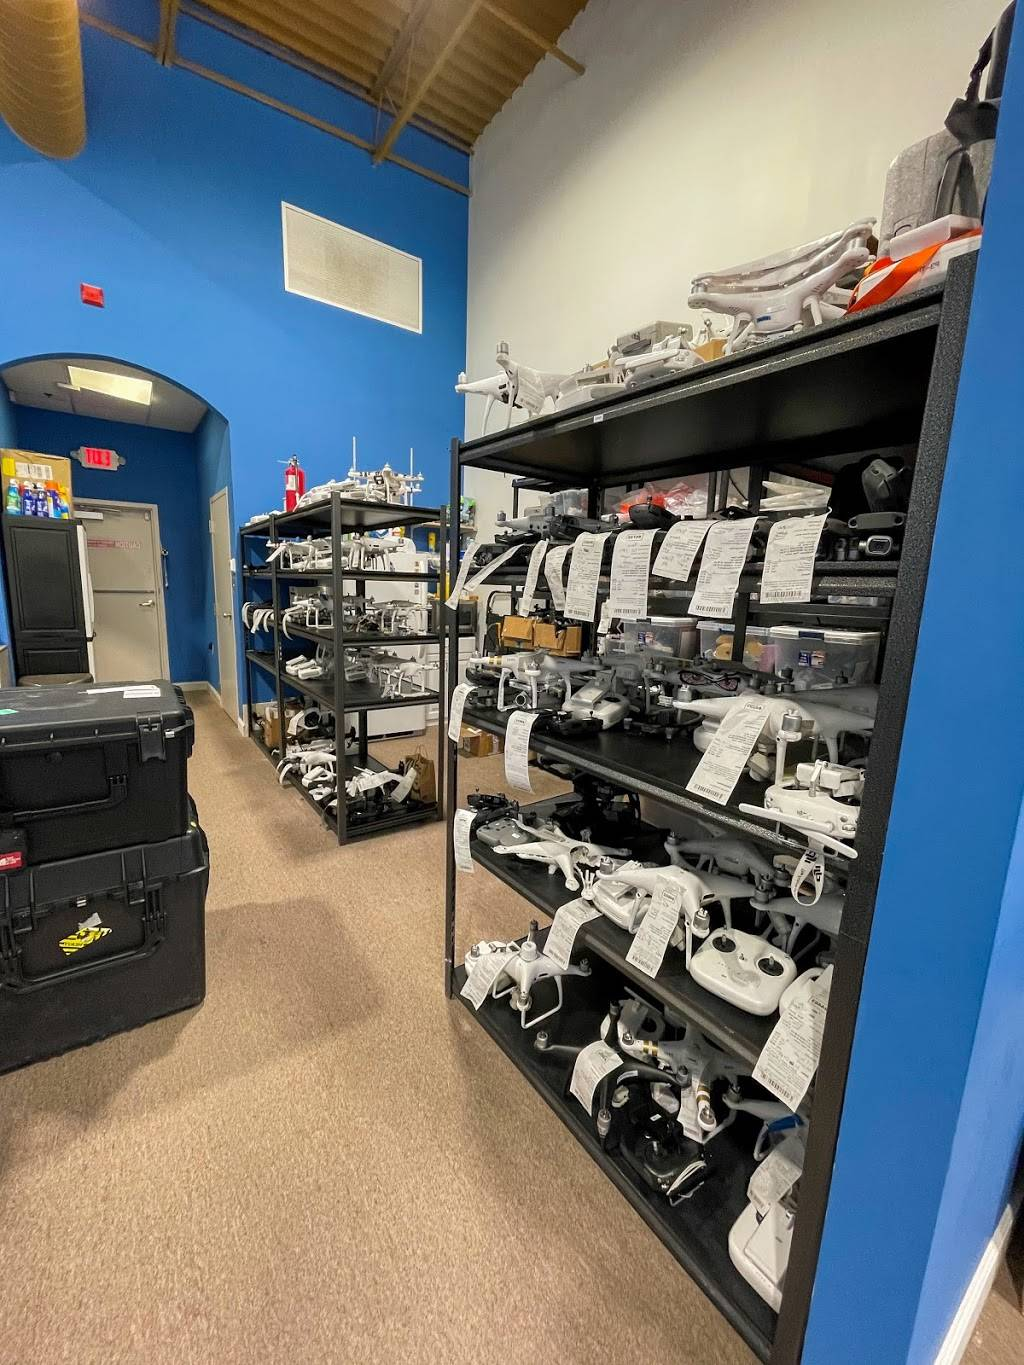 Drones Plus - electronics store  | Photo 2 of 6 | Address: 8549 Gaylord Pkwy #105, Frisco, TX 75034, USA | Phone: (469) 757-4497